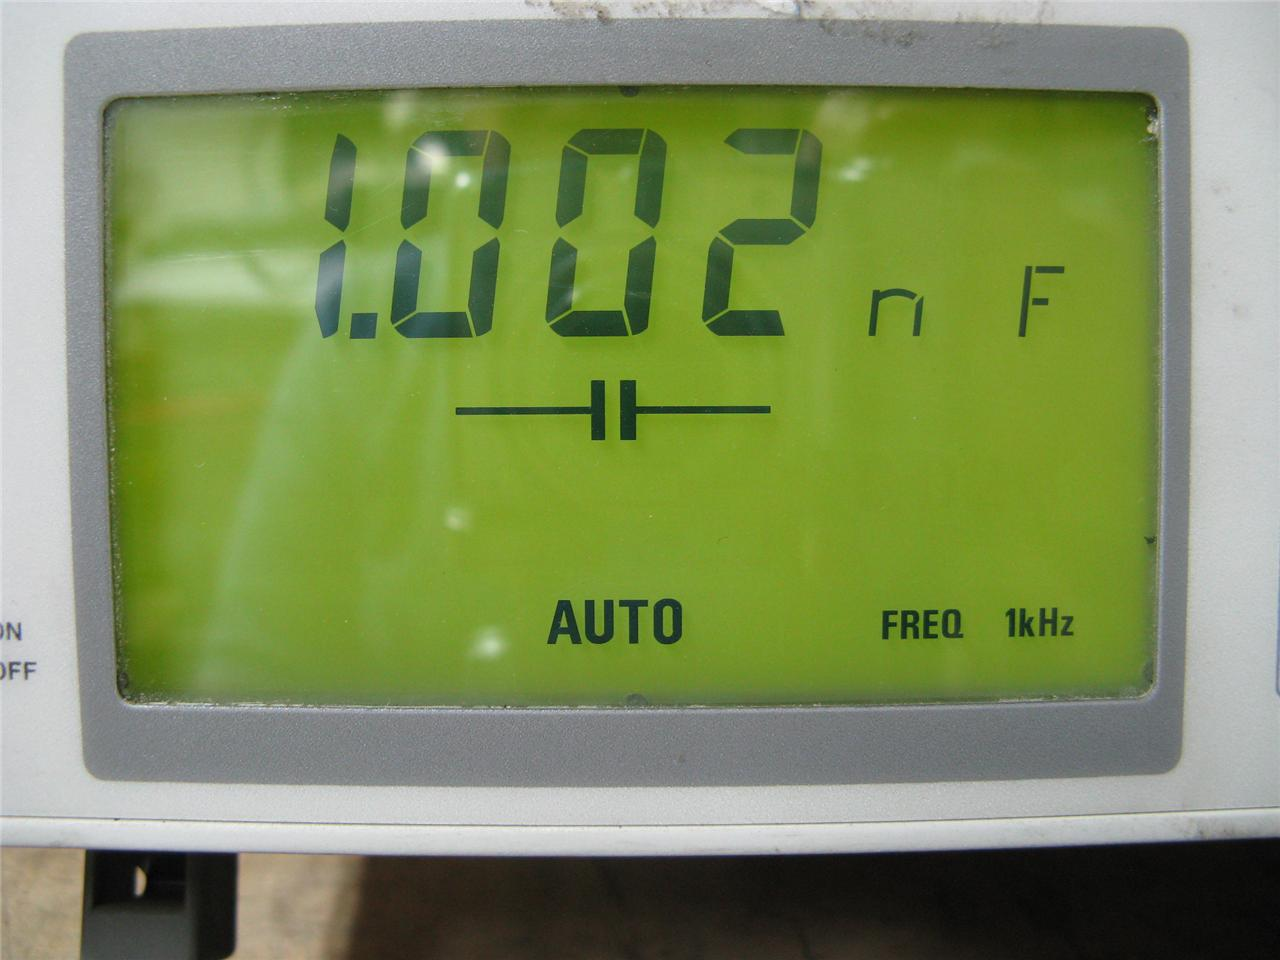 Fluke Pm 6303a Automatic Rcl Meter